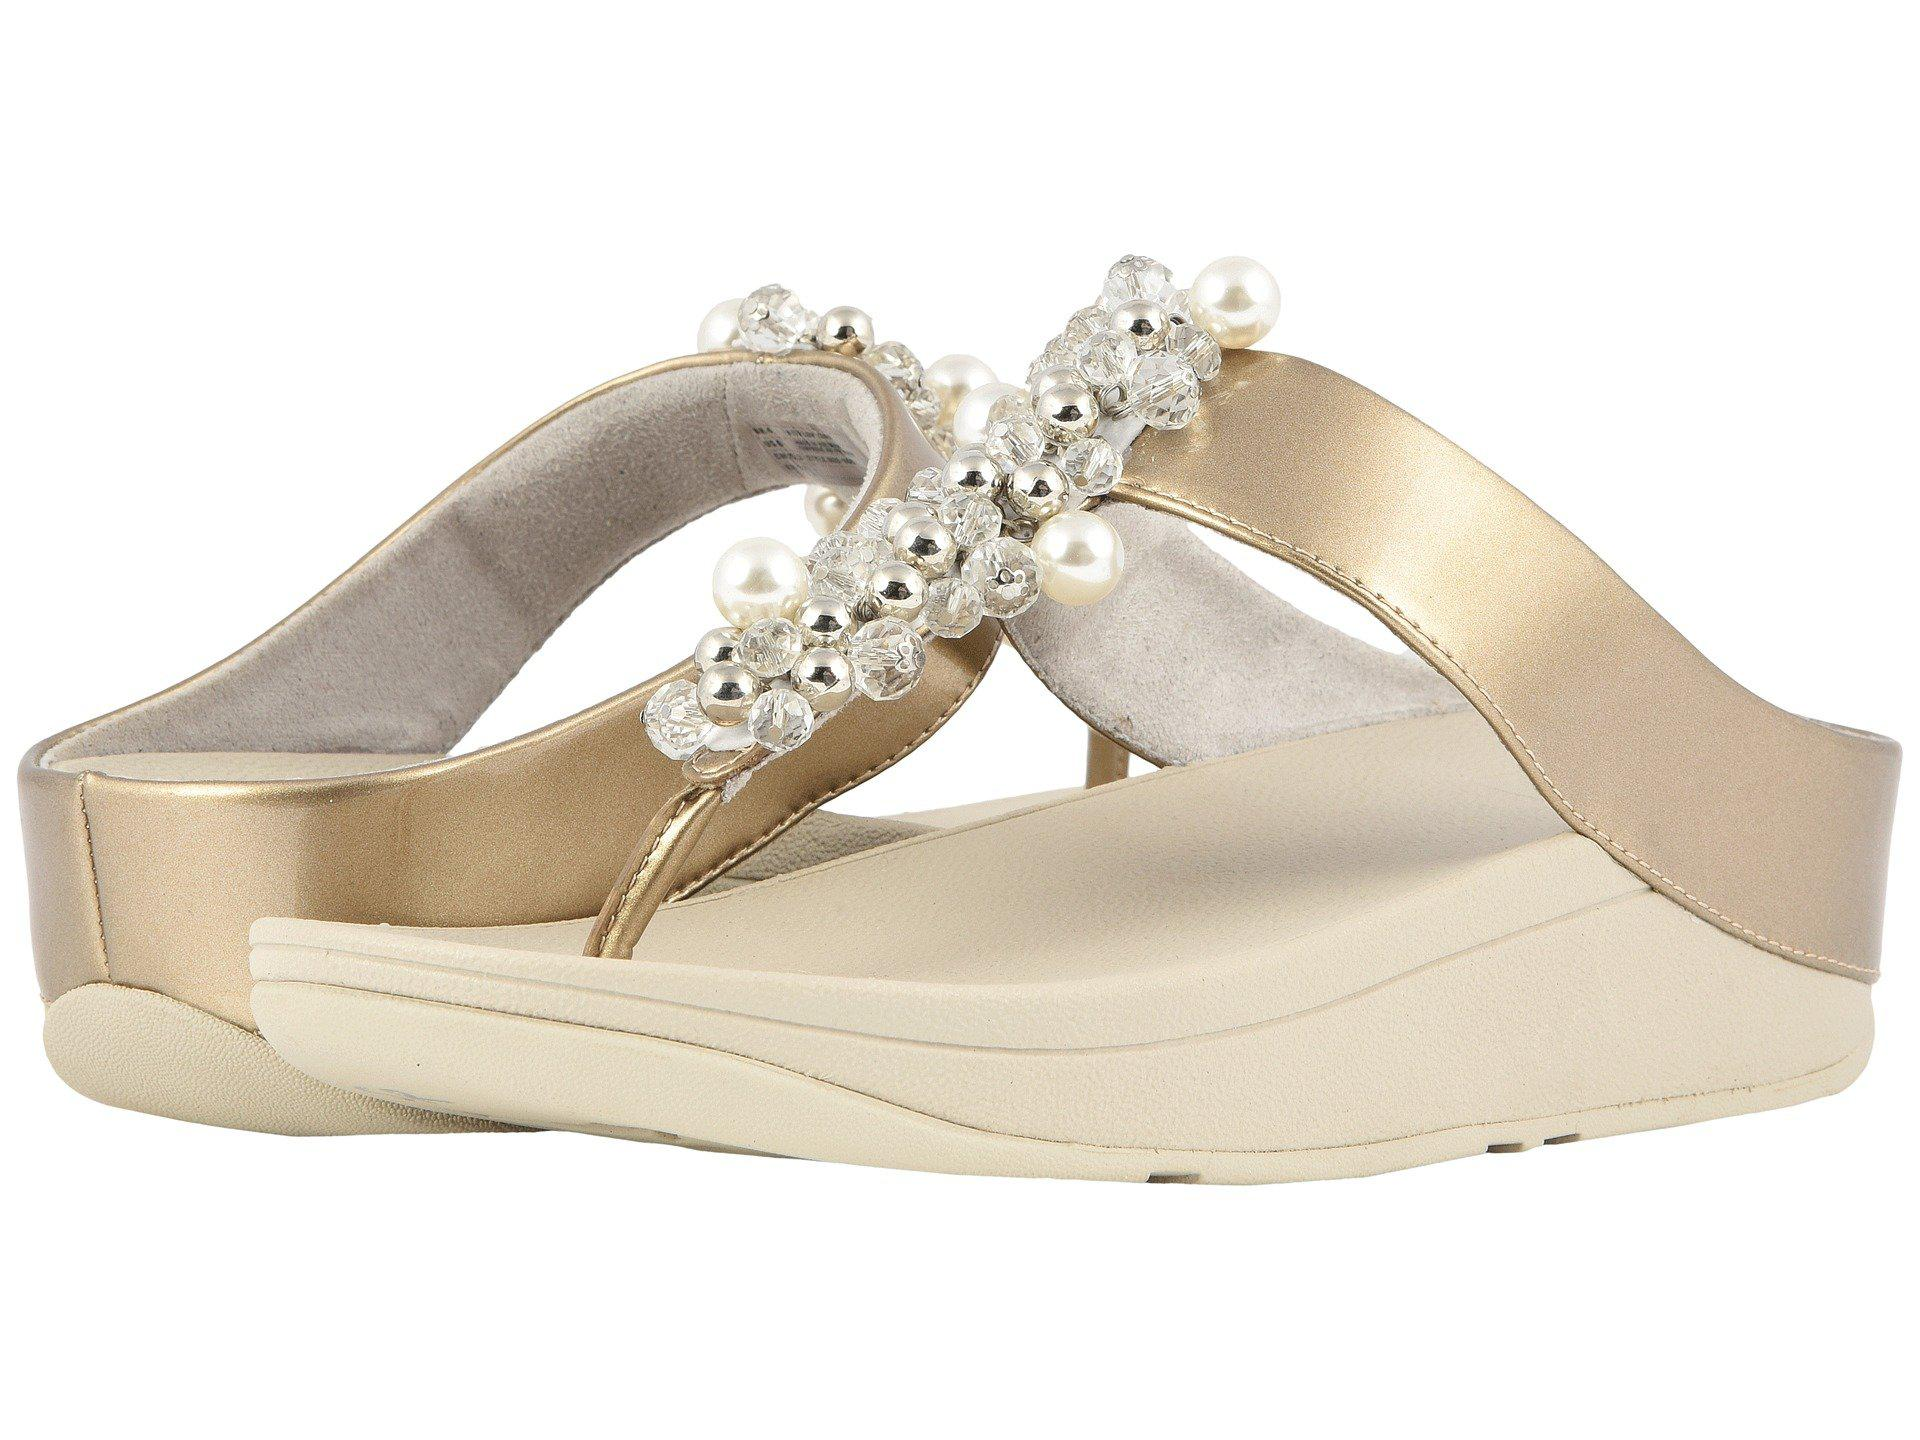 b29bde5d1 Lyst - Fitflop Deco Toe Thong Sandals (black) Women s Shoes in Metallic